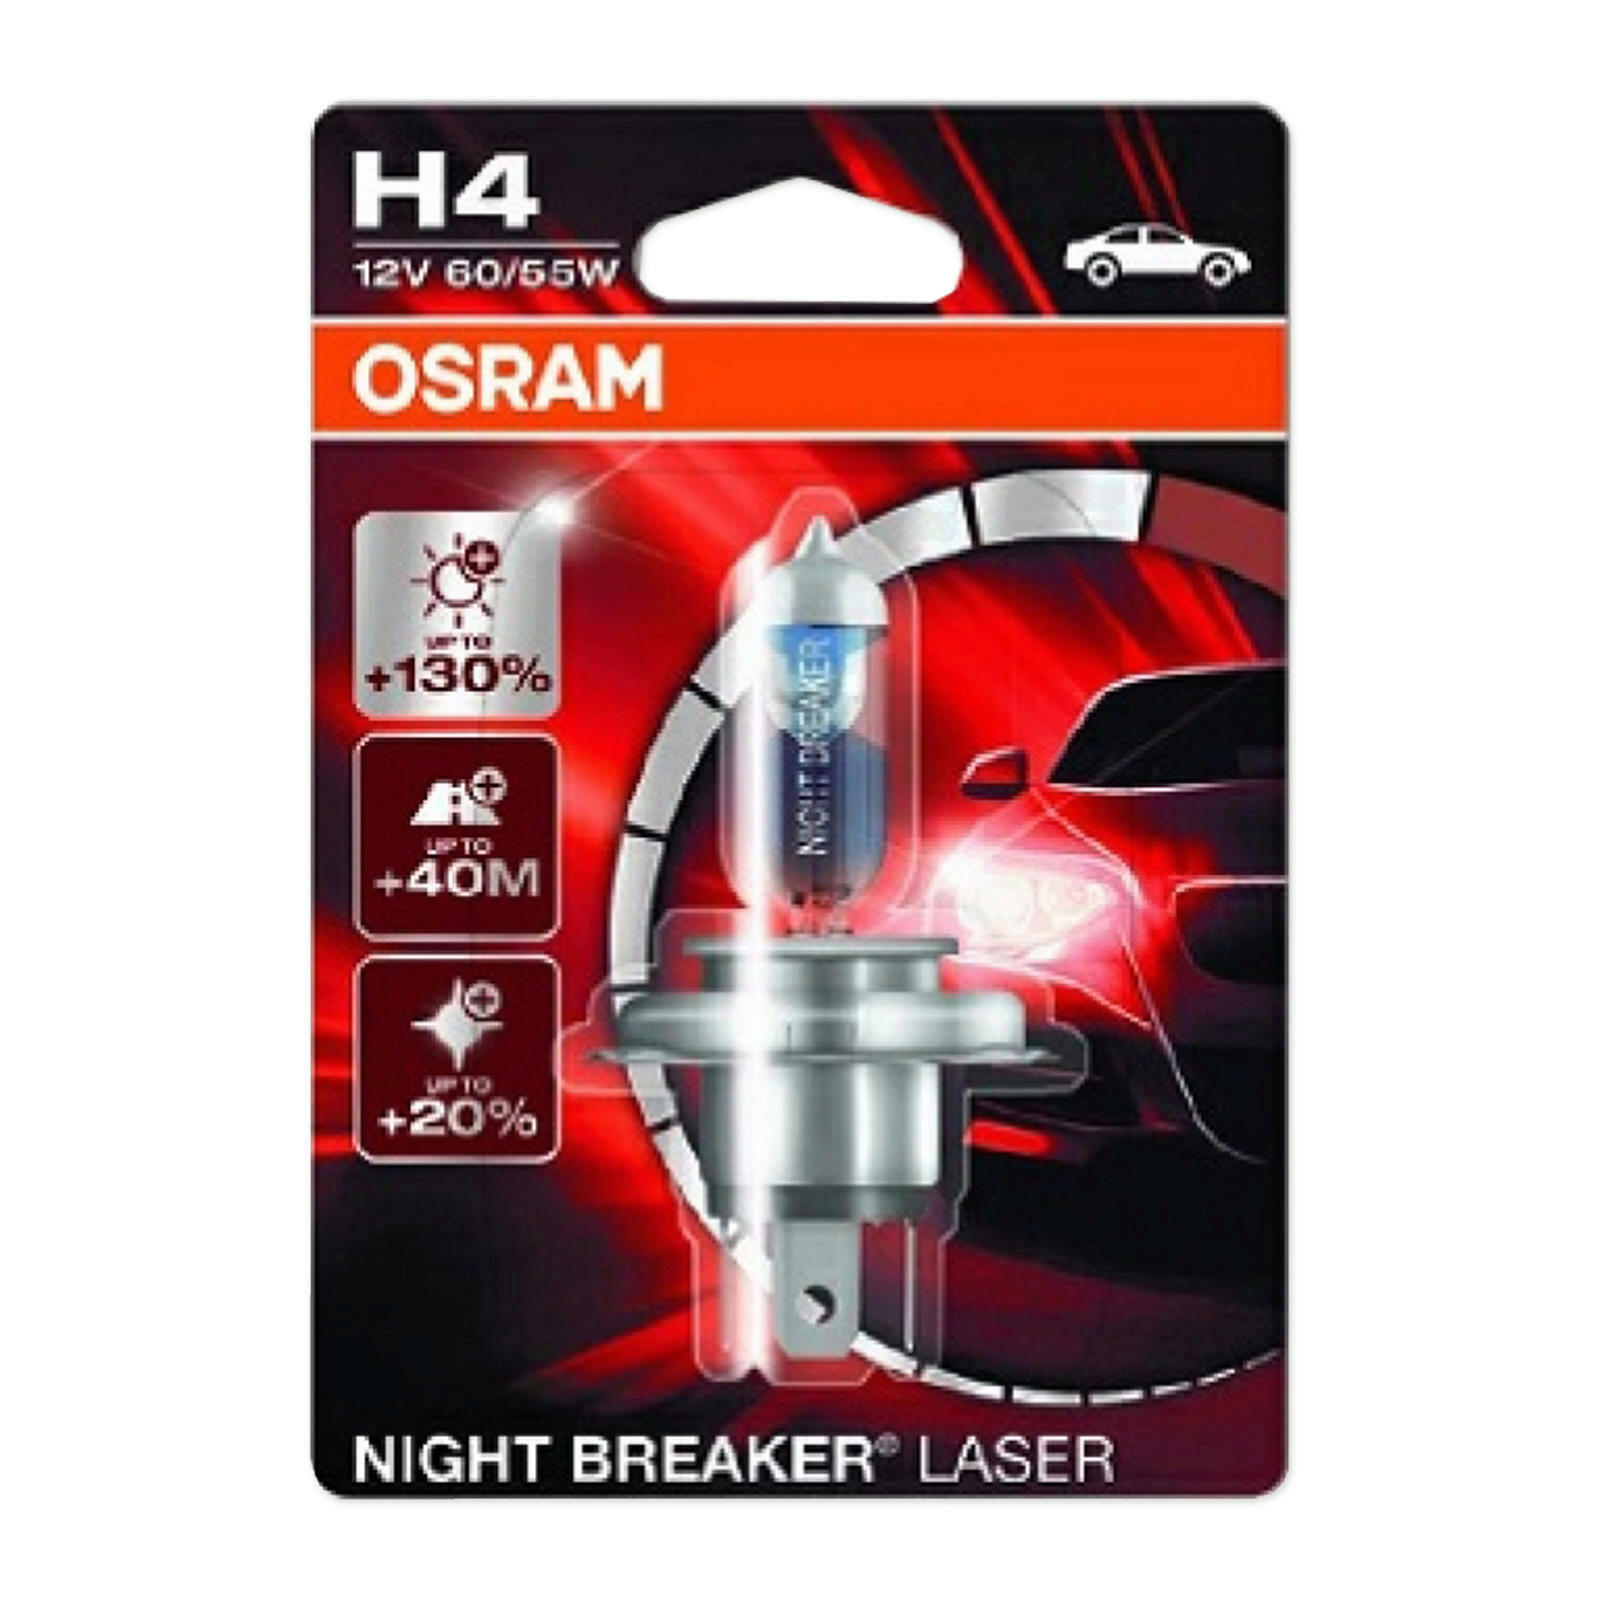 2x osram night breaker laser h4 64193nbl 01b halogen lampe birne 12v 60 55 w ebay. Black Bedroom Furniture Sets. Home Design Ideas